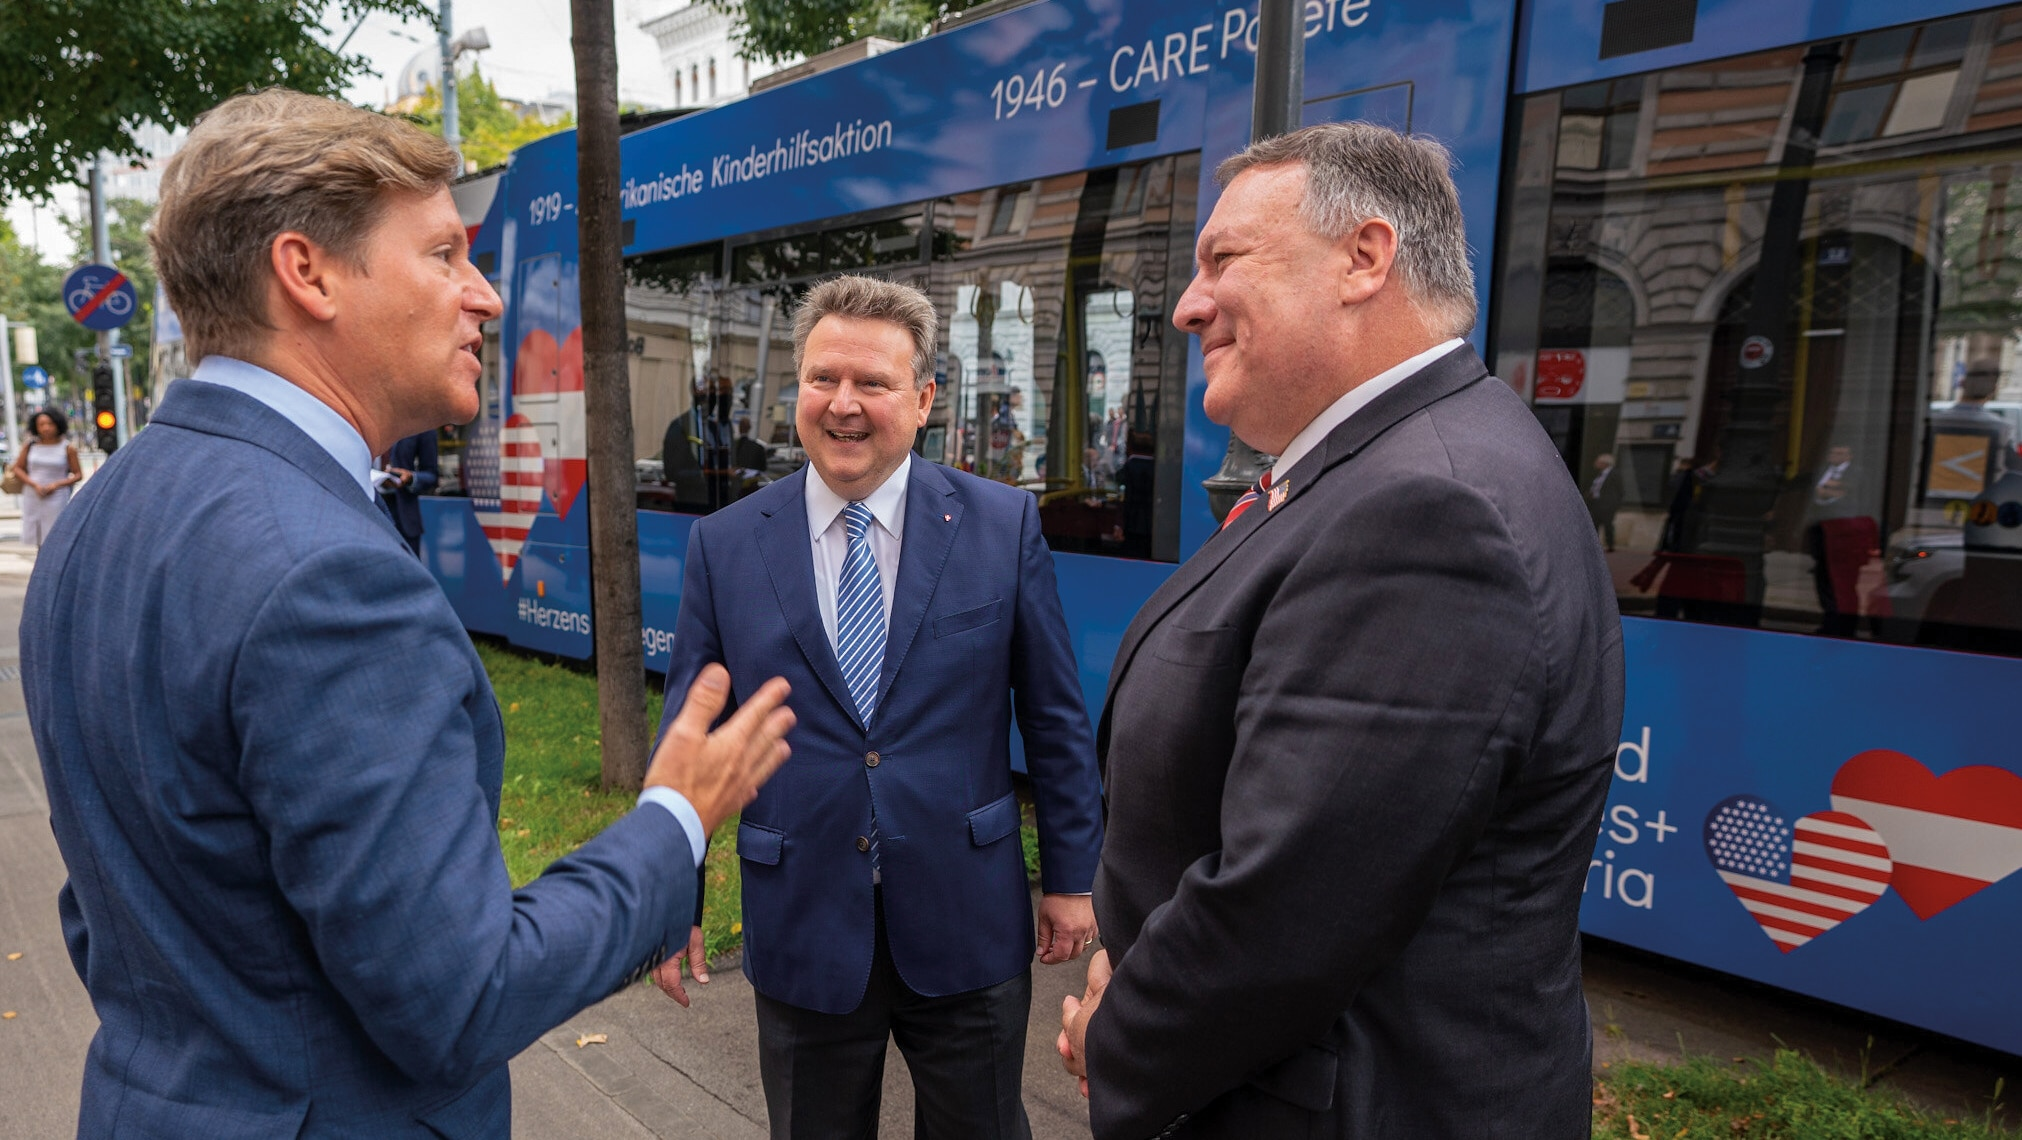 Photo showing Secretary Pompeo participating in the launch of the U.S.-Austria Friendship Tram with Vienna Mayor Michael Ludwig and United States Ambassador to the Republic of Austria Trevor D. Traina, Vienna, Austria, August 14, 2020. [Department of State]